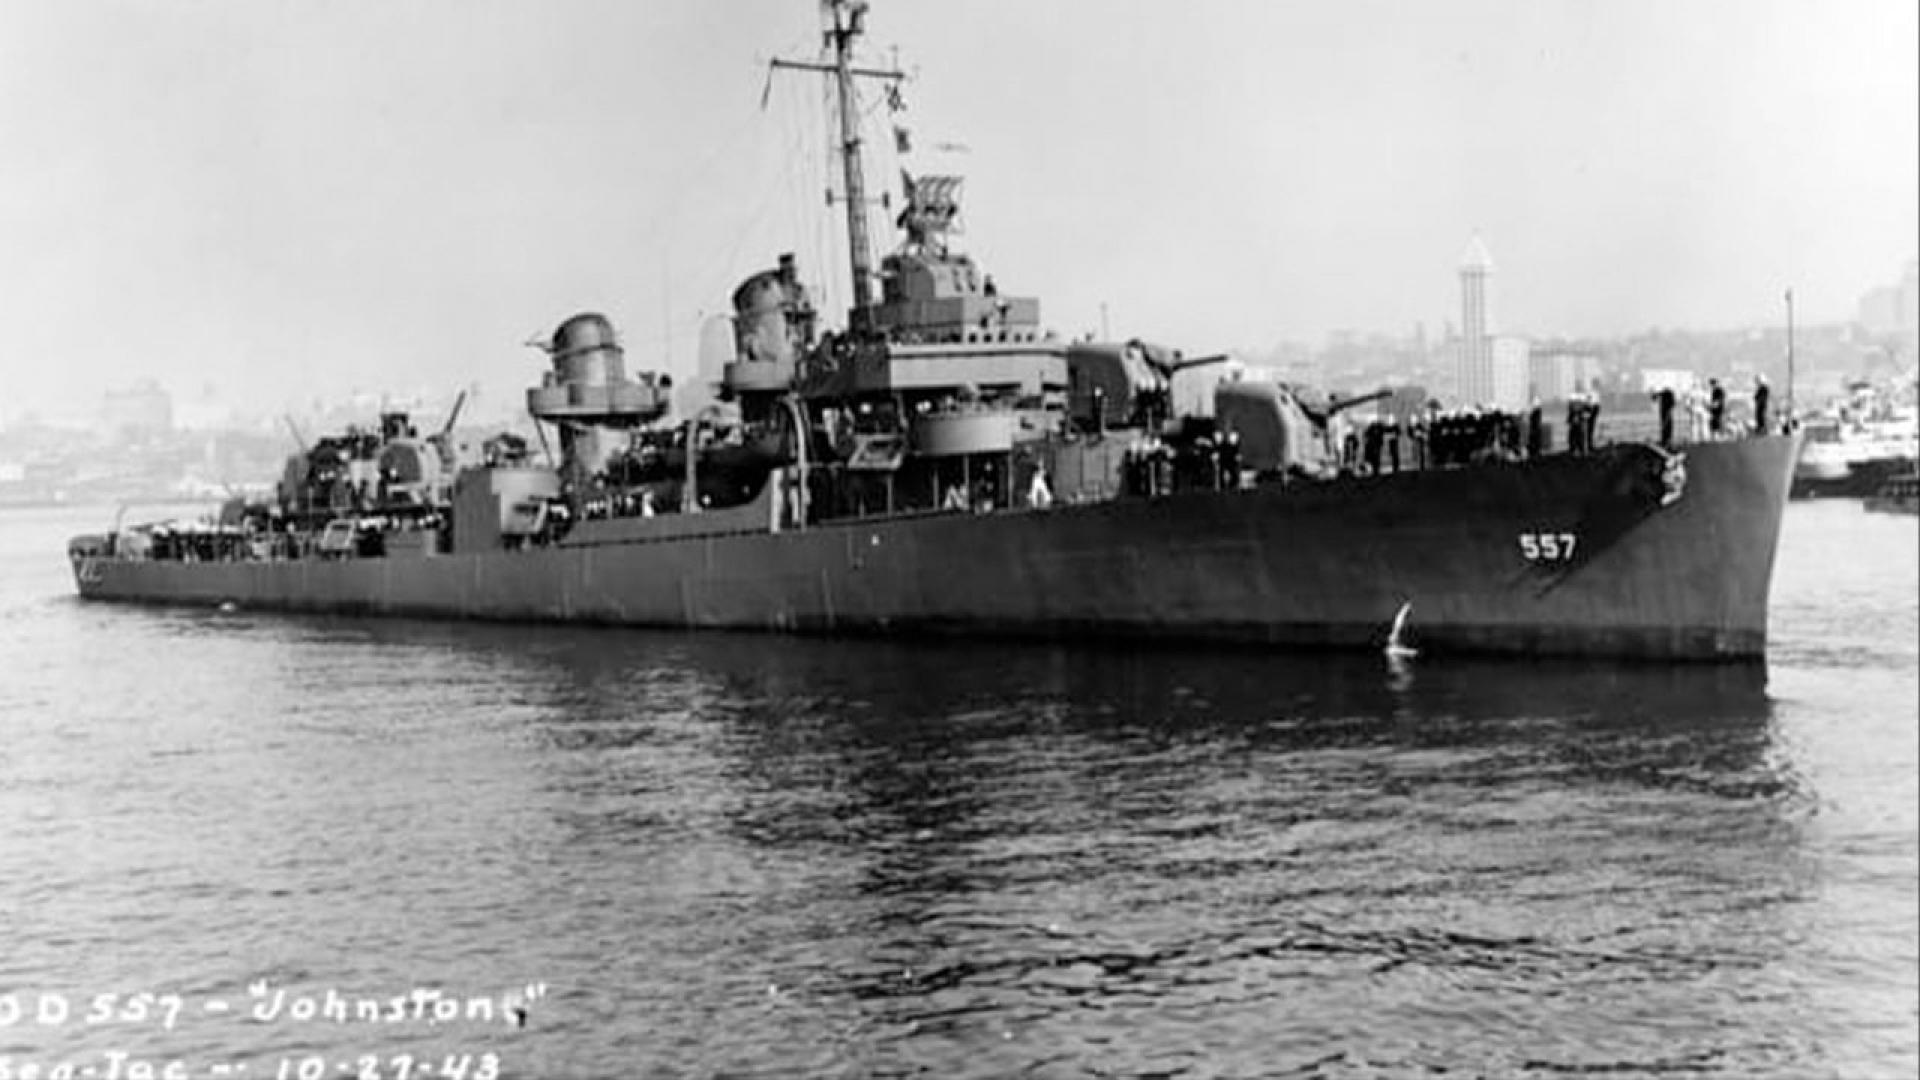 The USS Johnson, pictured here in 1943.